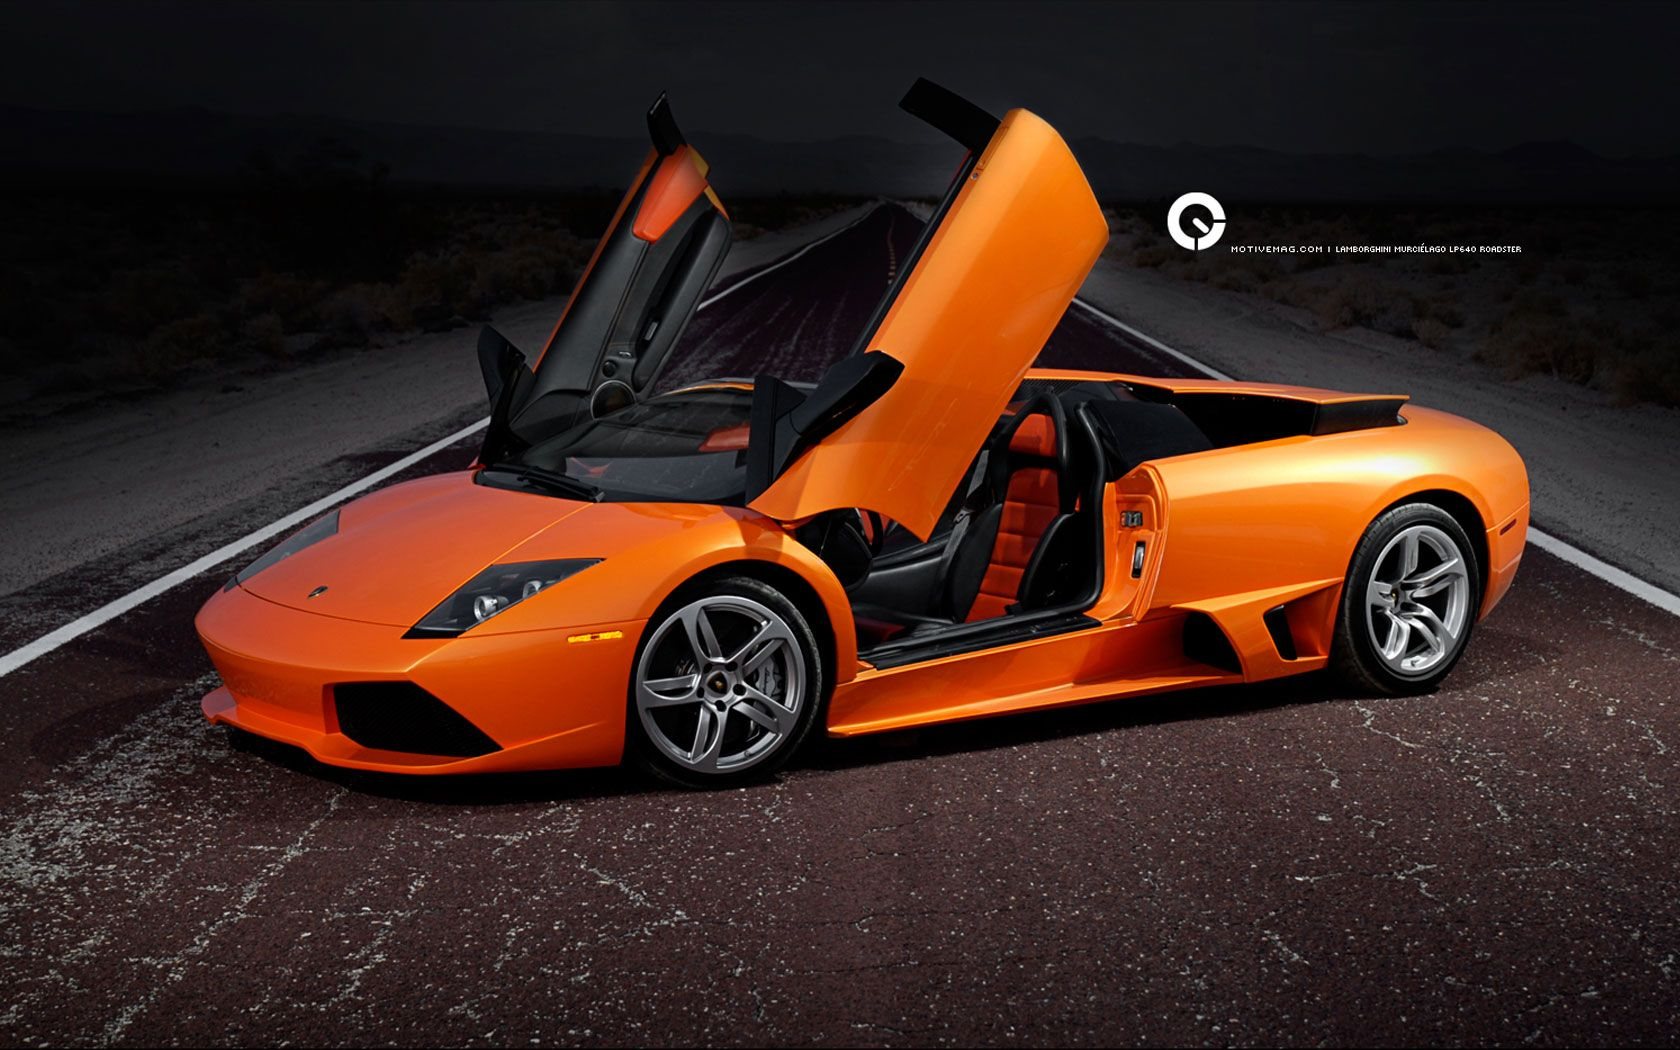 Lamborghini Gallardo LP Superleggera Wallpaper HD 1920x1440 Wallpapers 52